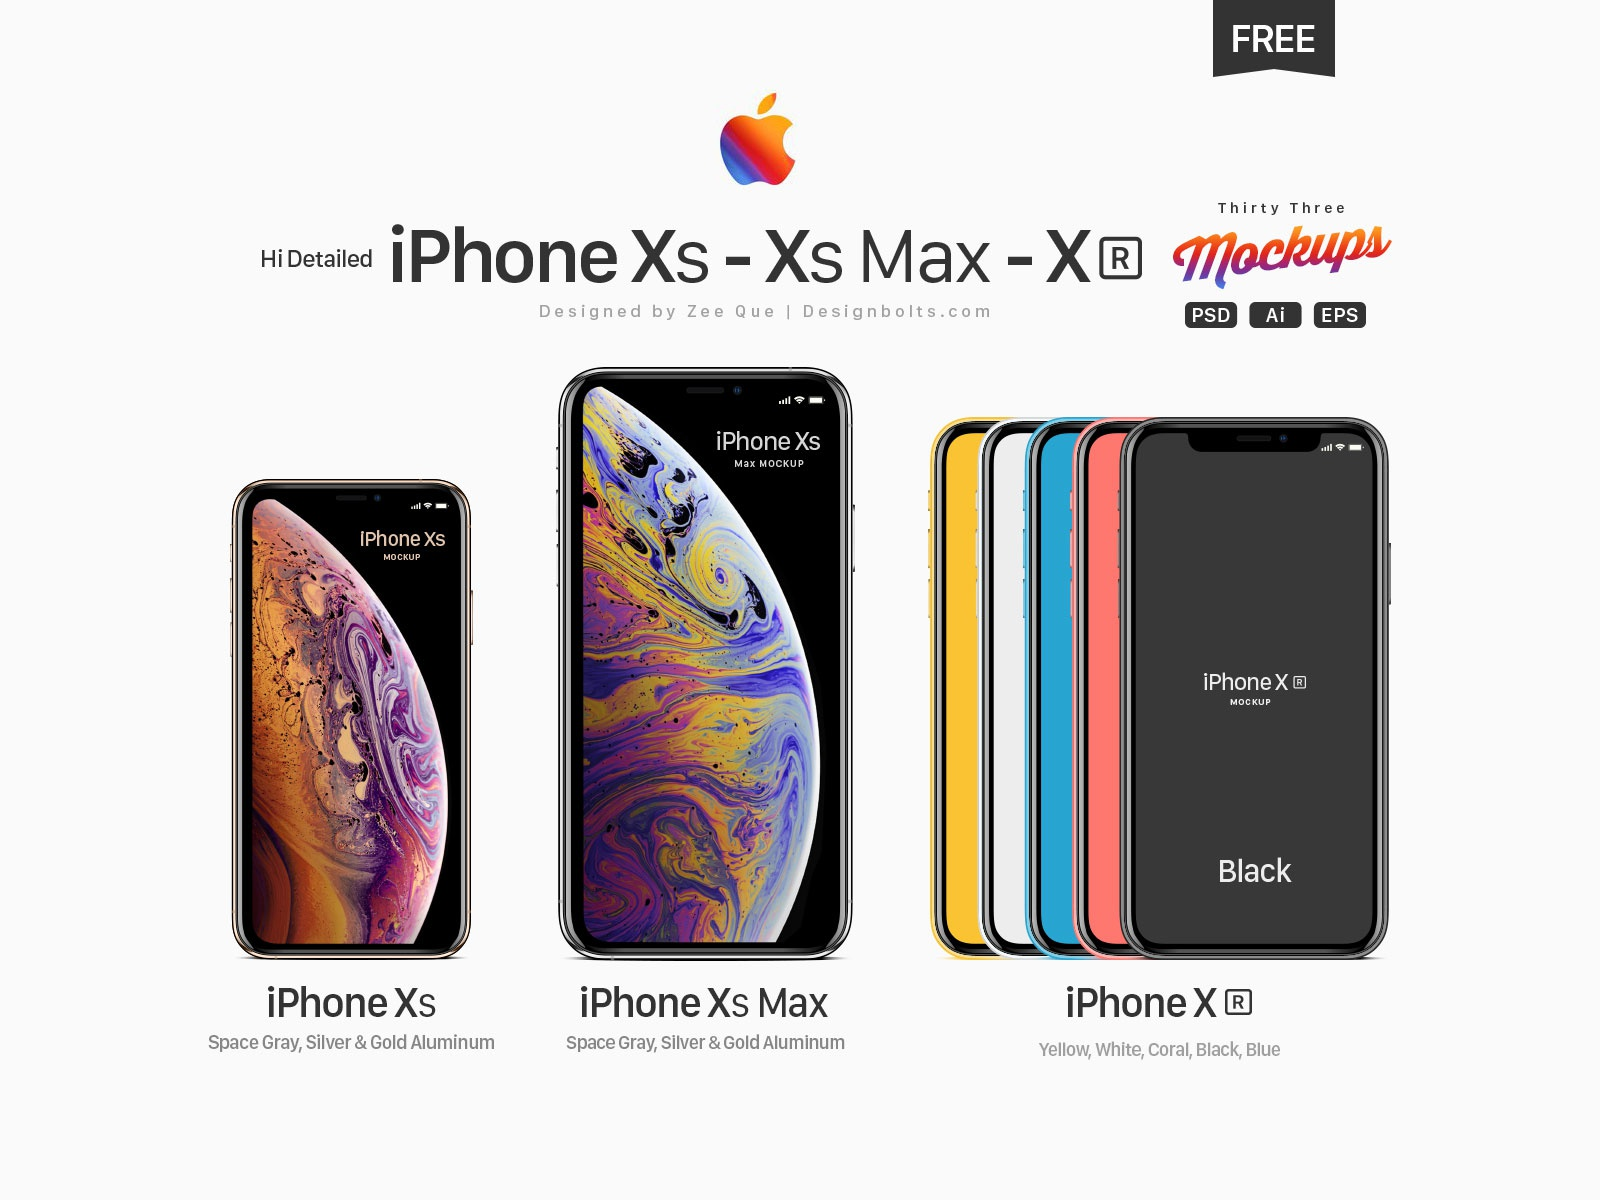 Free Apple Iphone Xs Xs Max Xr Mockup Psd Ai Eps By Zee Que